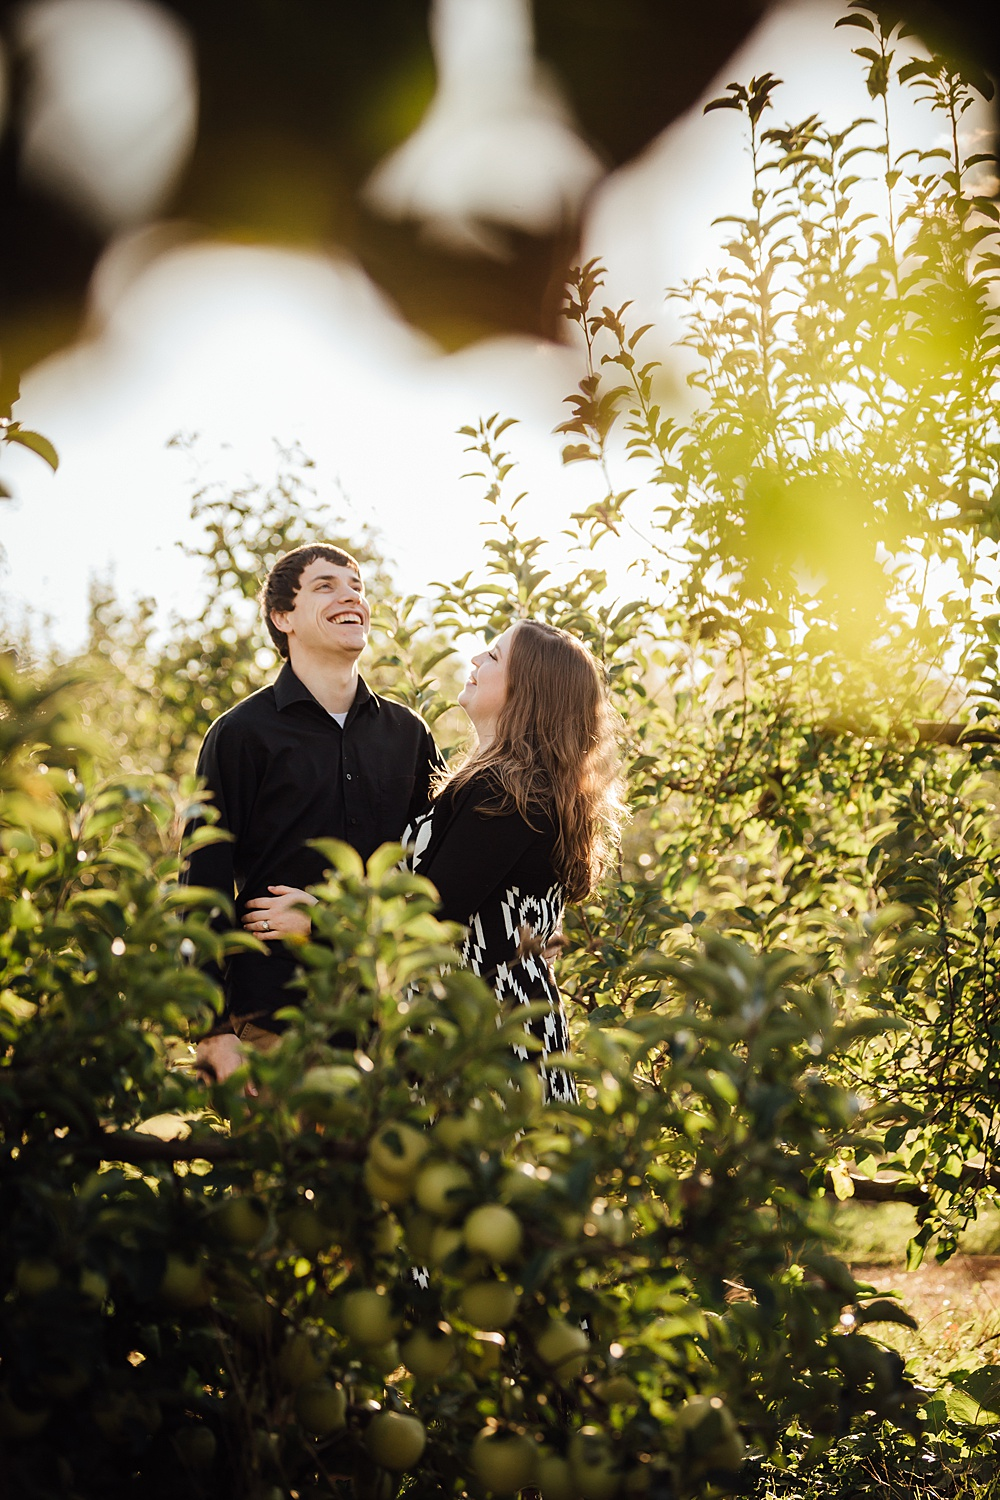 fall_apple_orchard_engagement-photography002.jpg